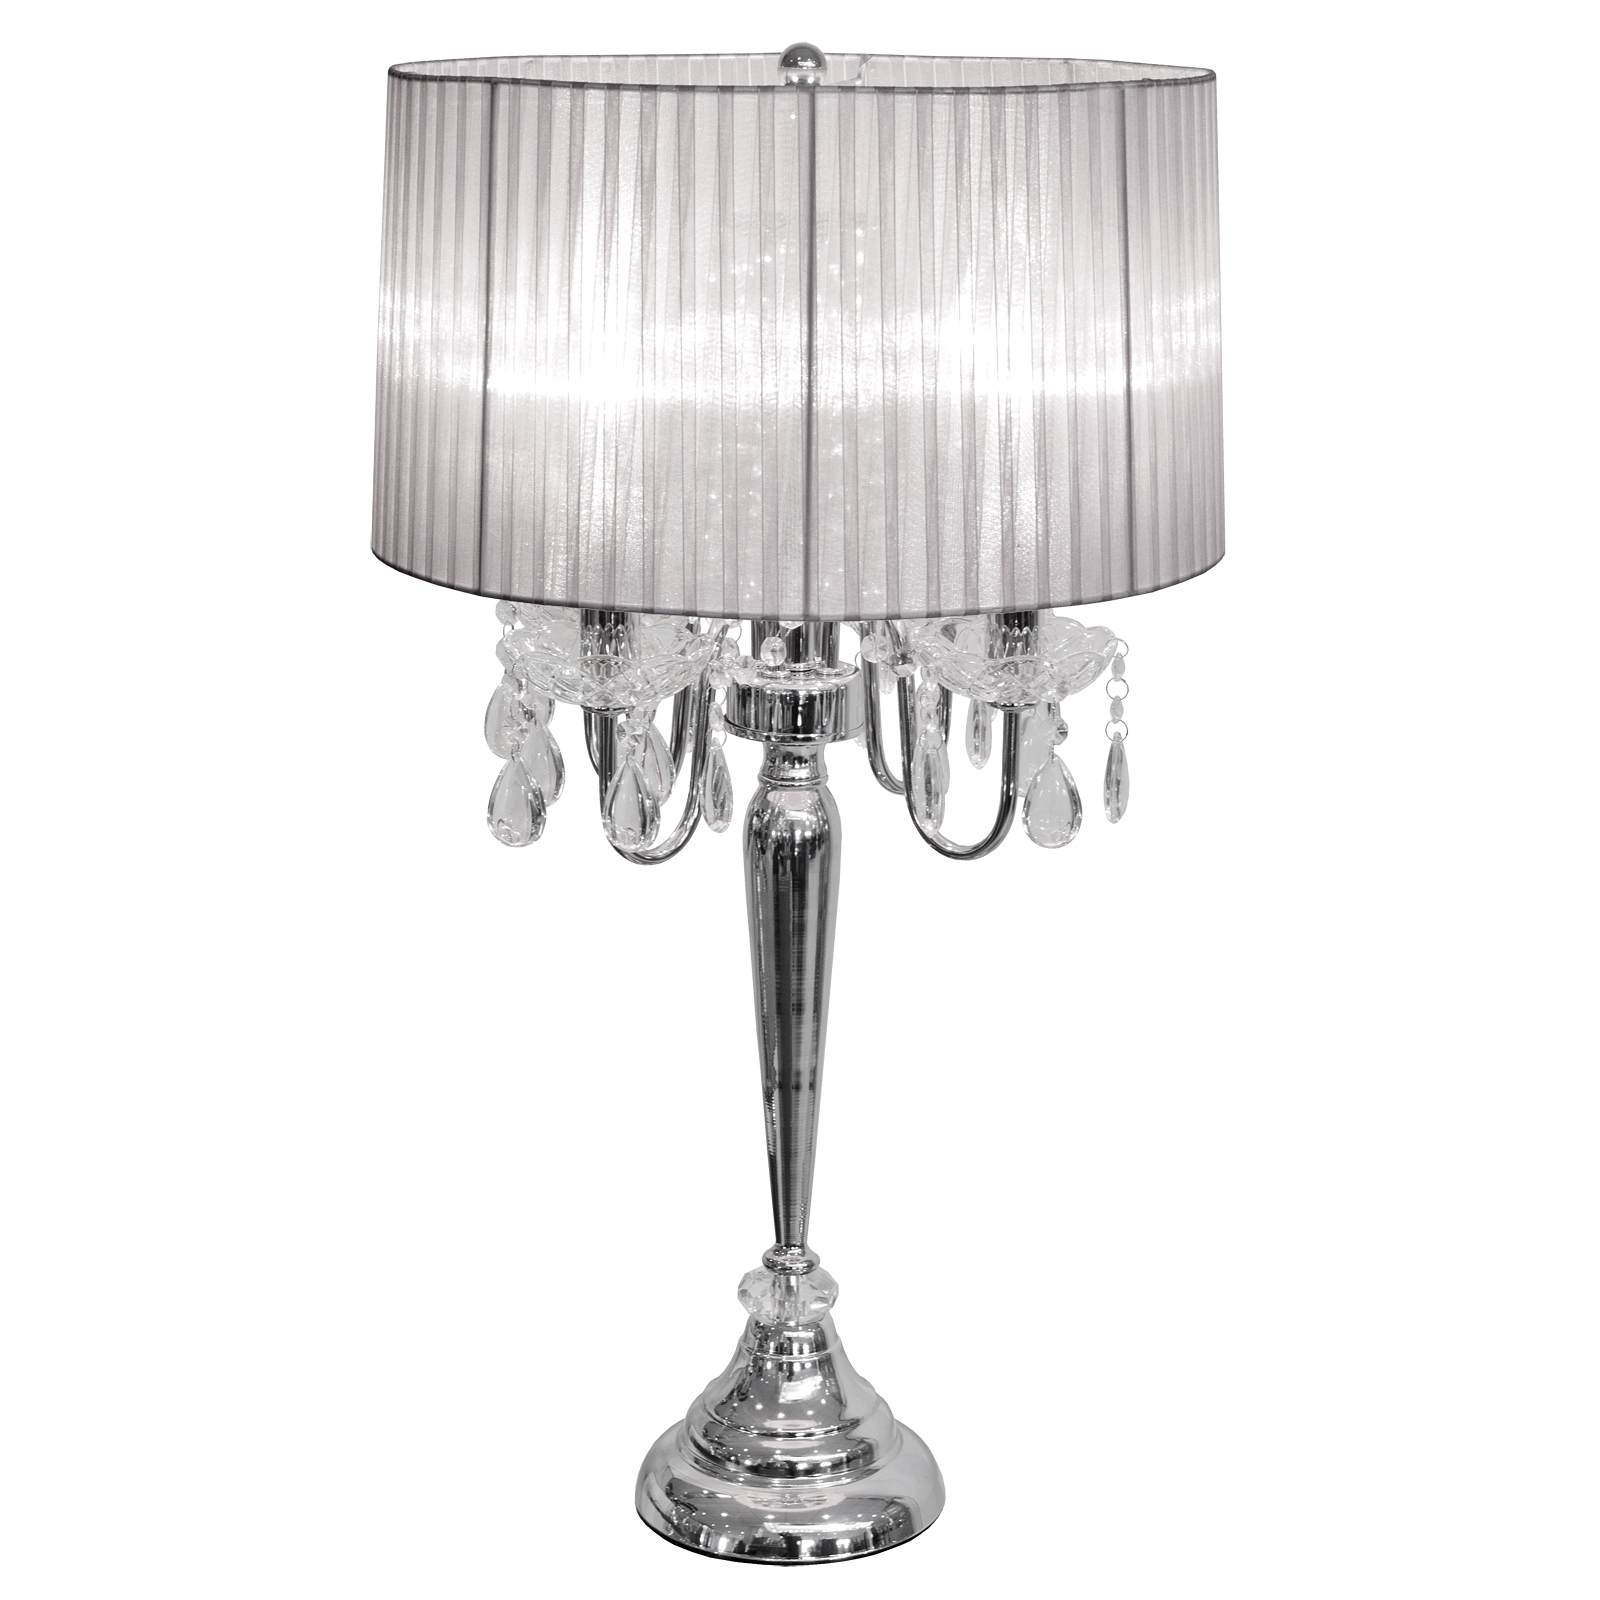 Silver shades for table lamps